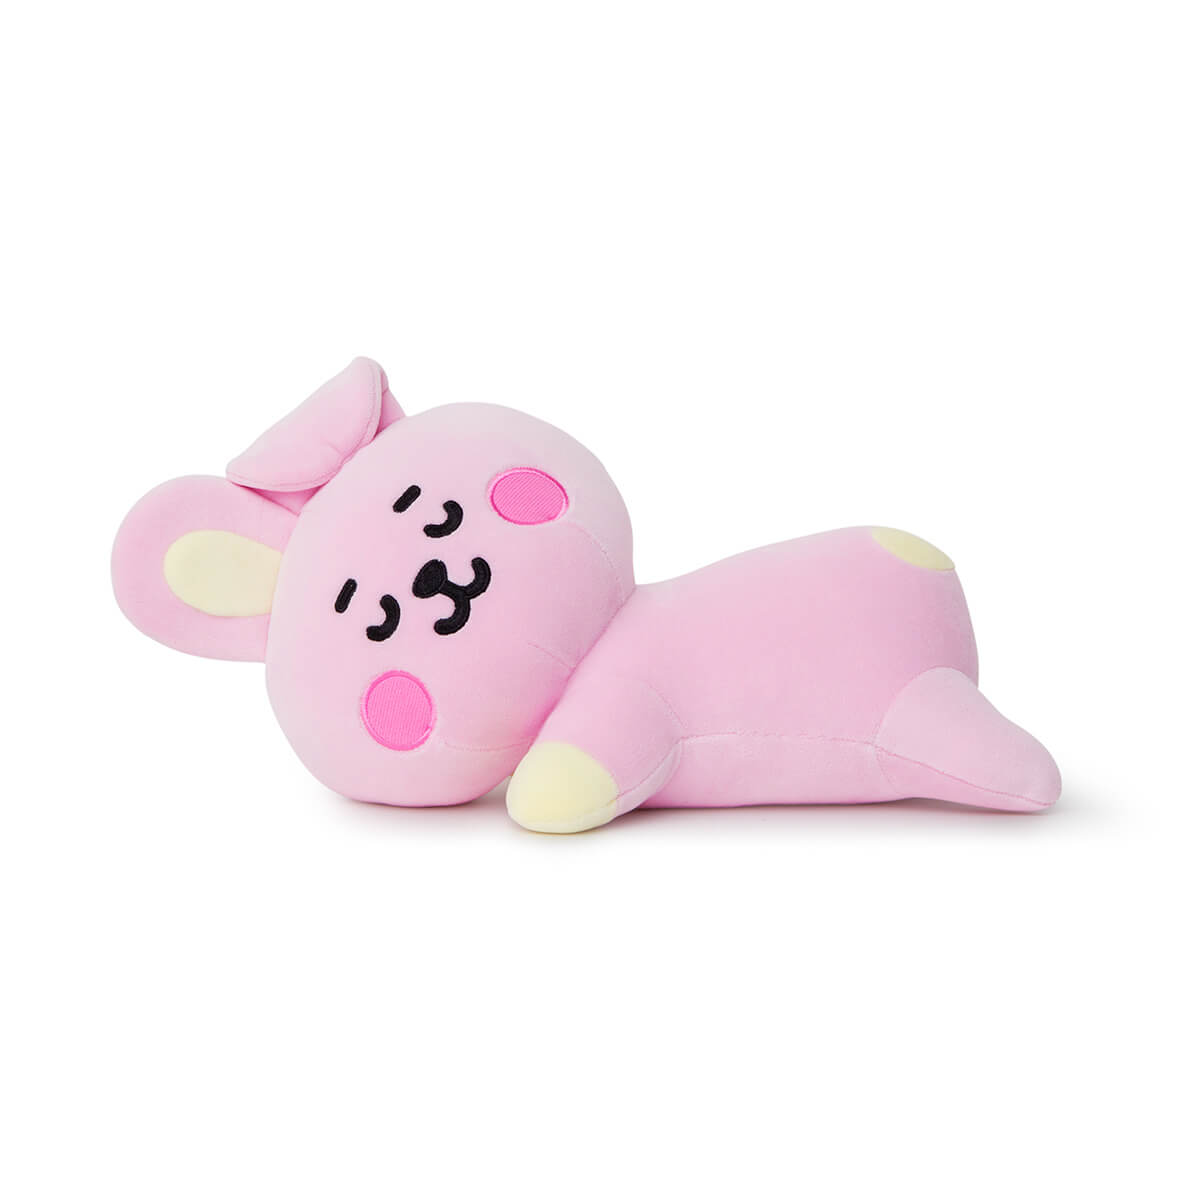 BT21 COOKY Baby Mini Pillow Cushion